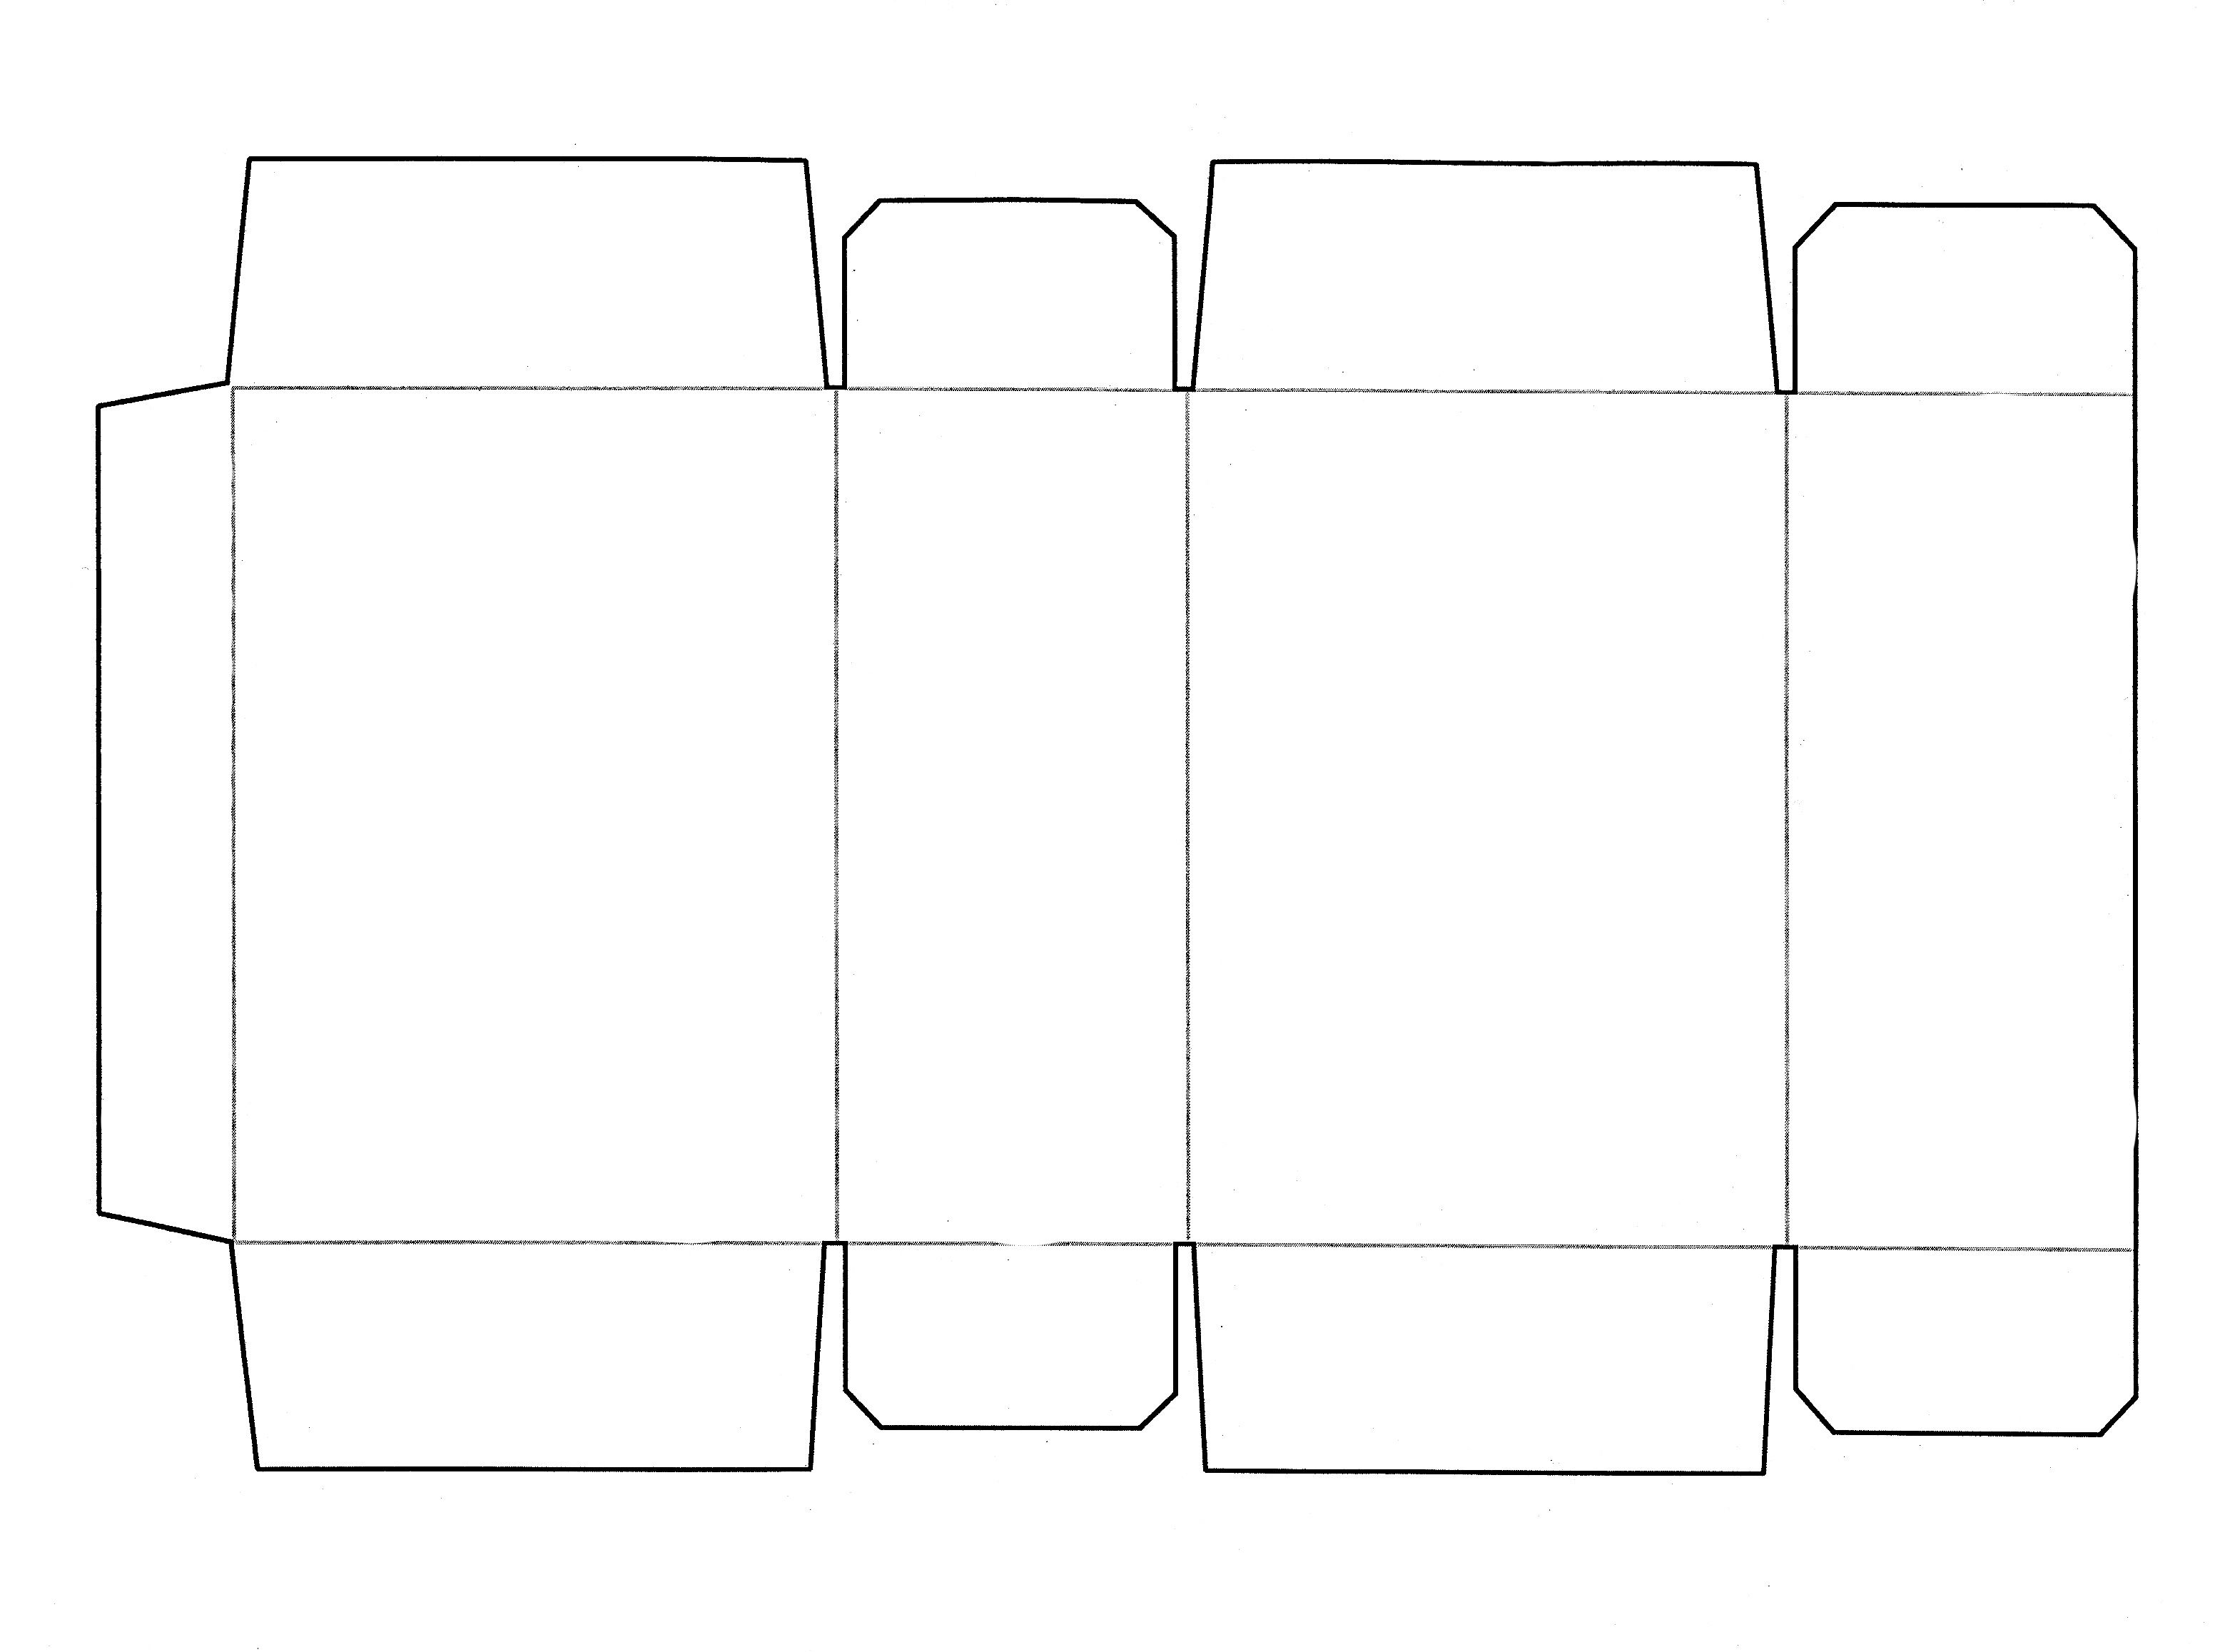 cereal-box-template.jpg 3,111×2,315 pixels | Dollhouses ...